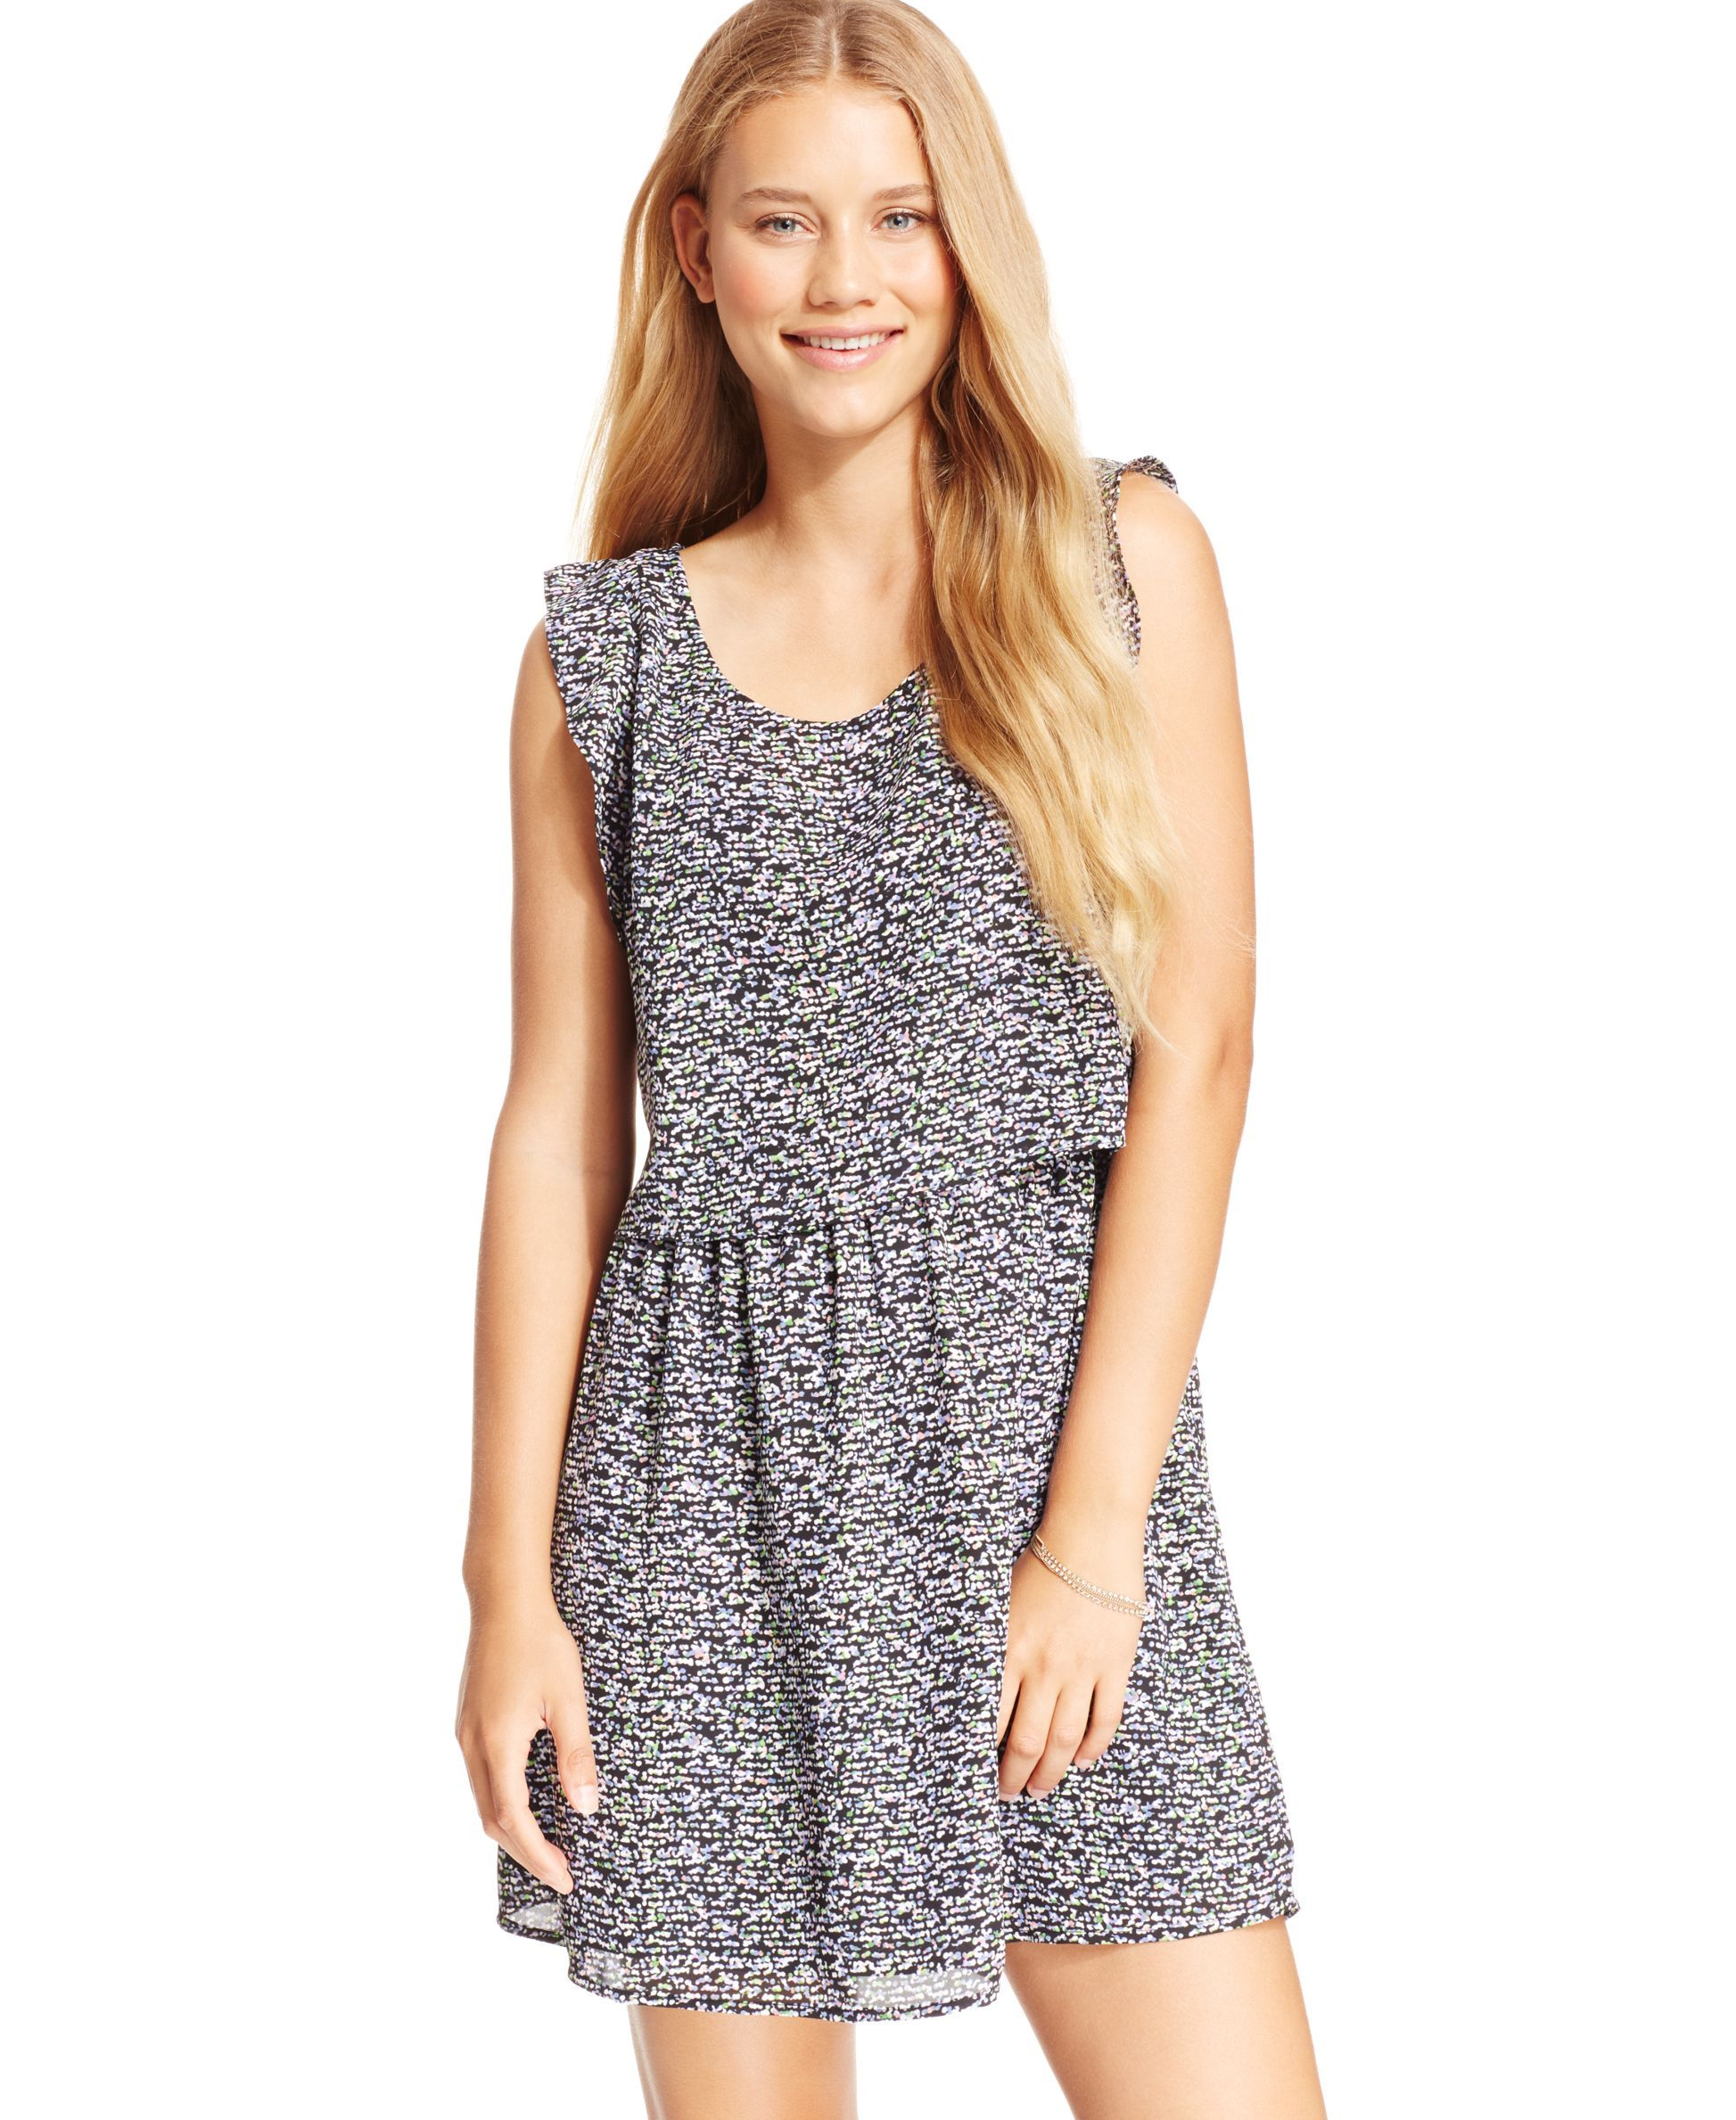 Jessica Simpson E Convertible Popover Tank Dress